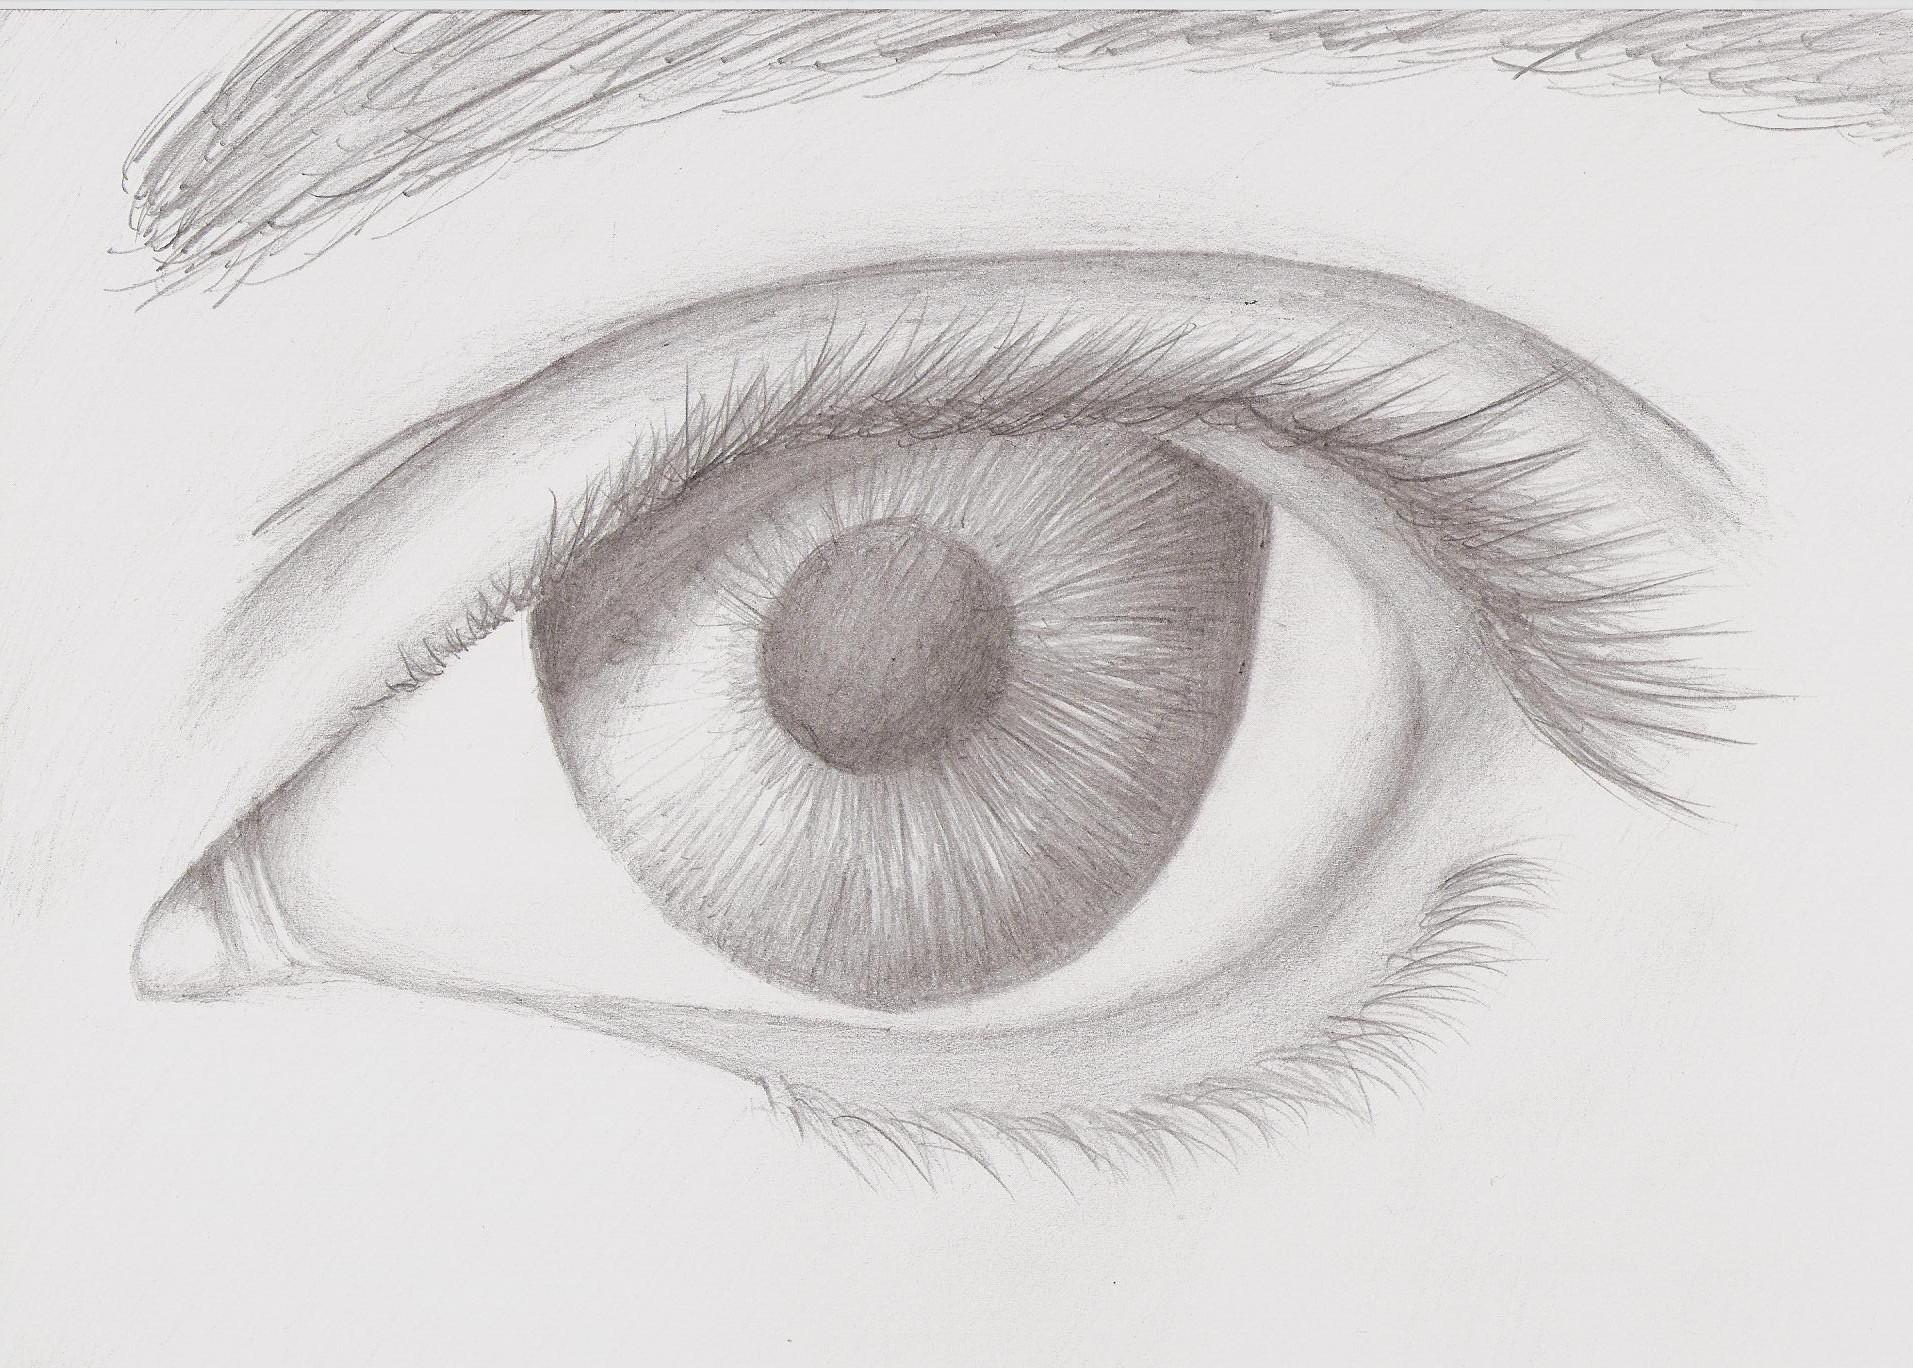 Mark crilley realism eye attempt by foreverstrawberries on deviantart mark crilley realism eye attempt by foreverstrawberries mark crilley realism eye attempt by foreverstrawberries ccuart Image collections